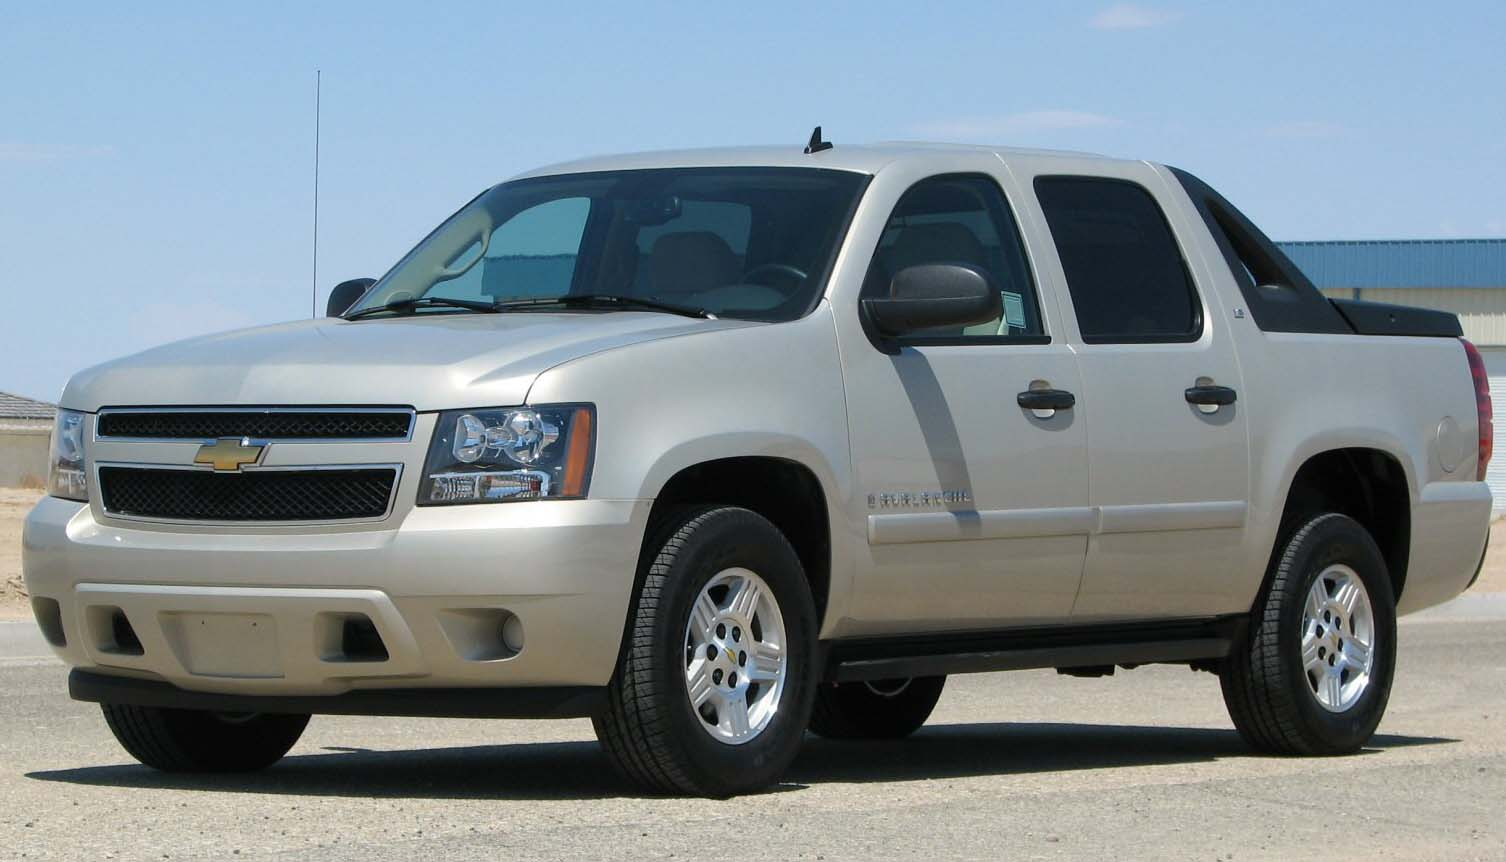 Chevrolet Avalanche 2016 >> Chevrolet Avalanche Wikipedia